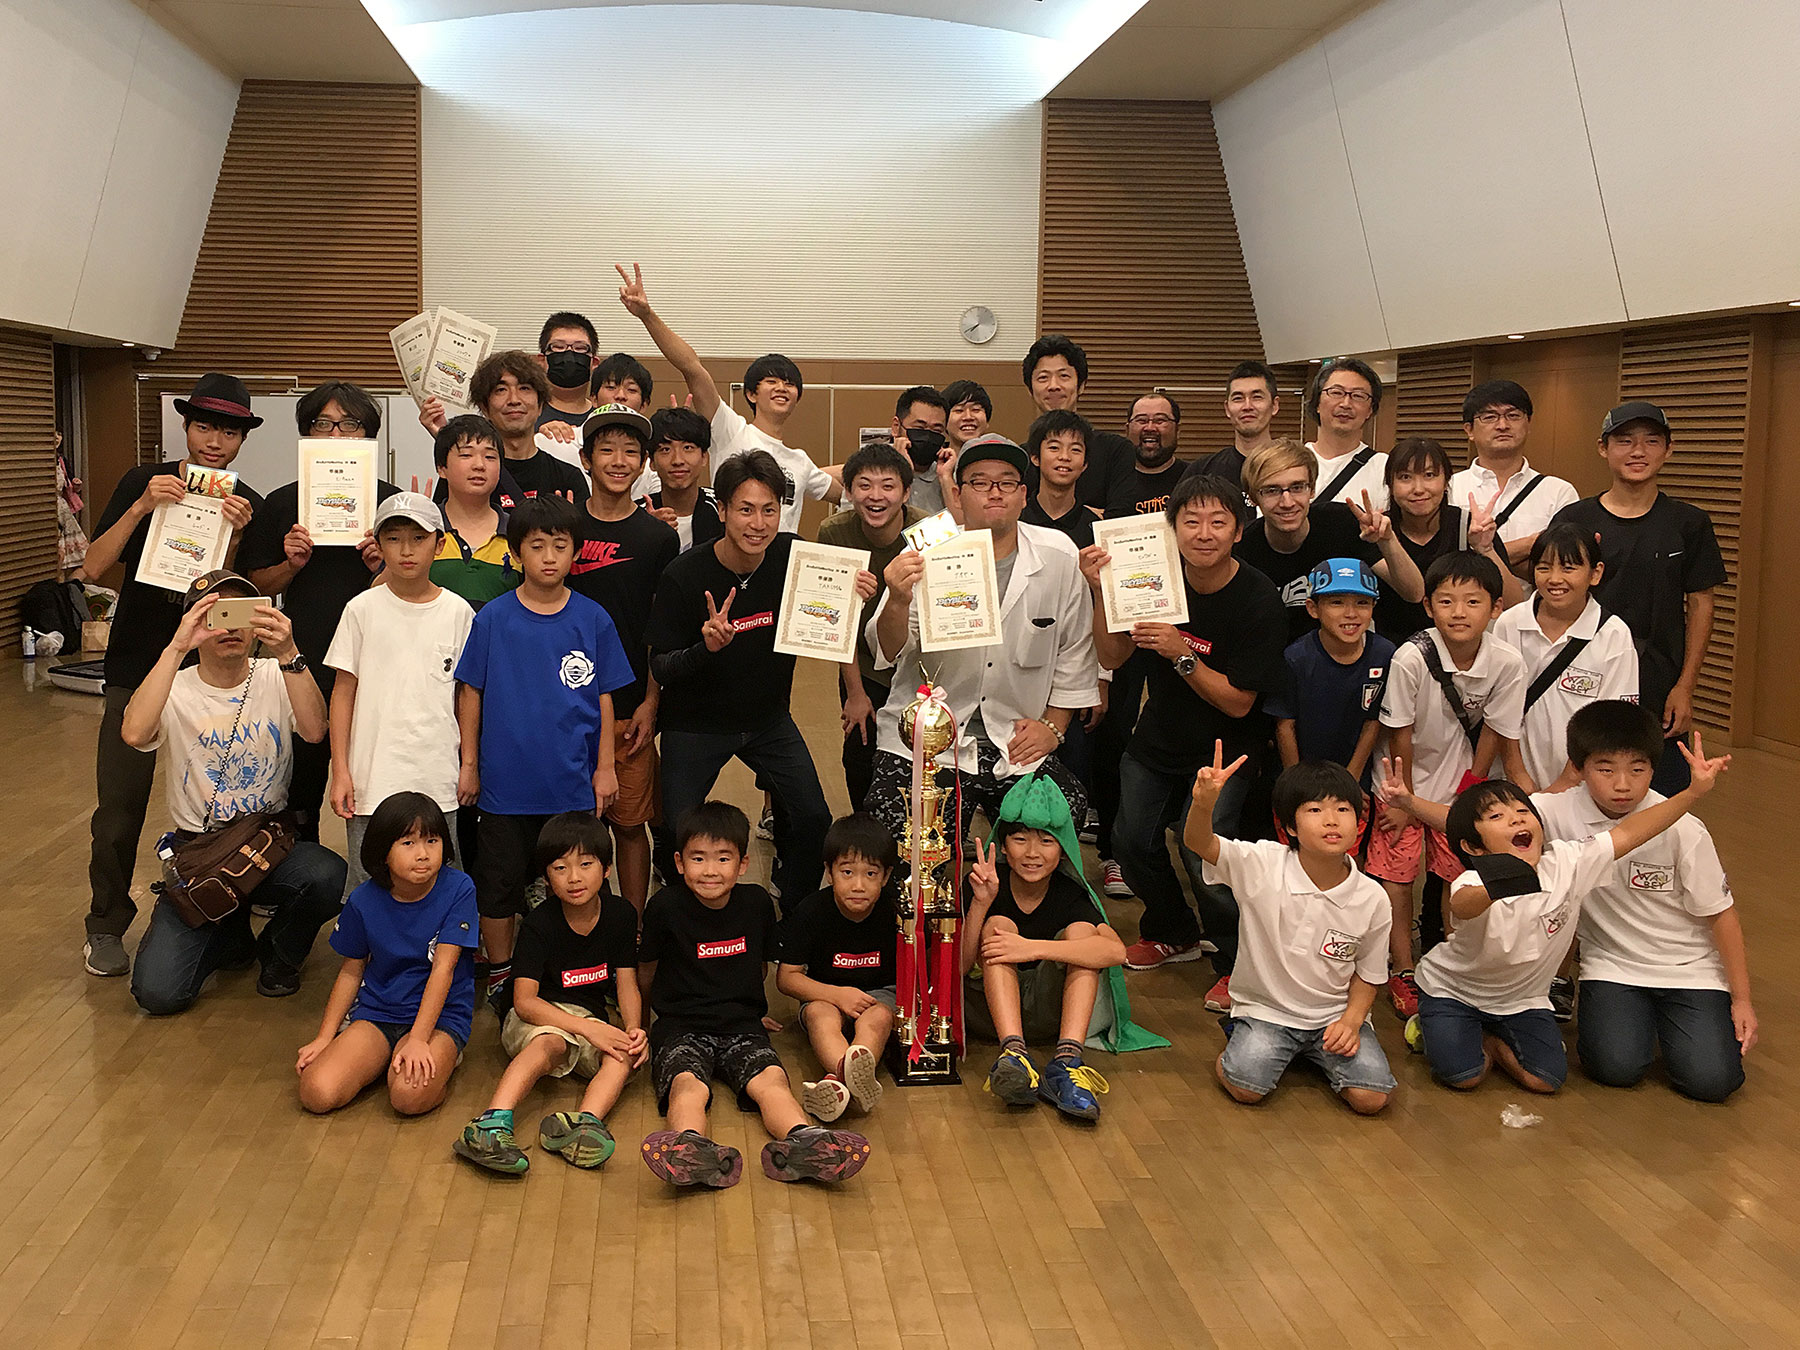 Group photo of players at WARIBEY Burst Cup 2018 Autumn Beyblade Tournament in Japan